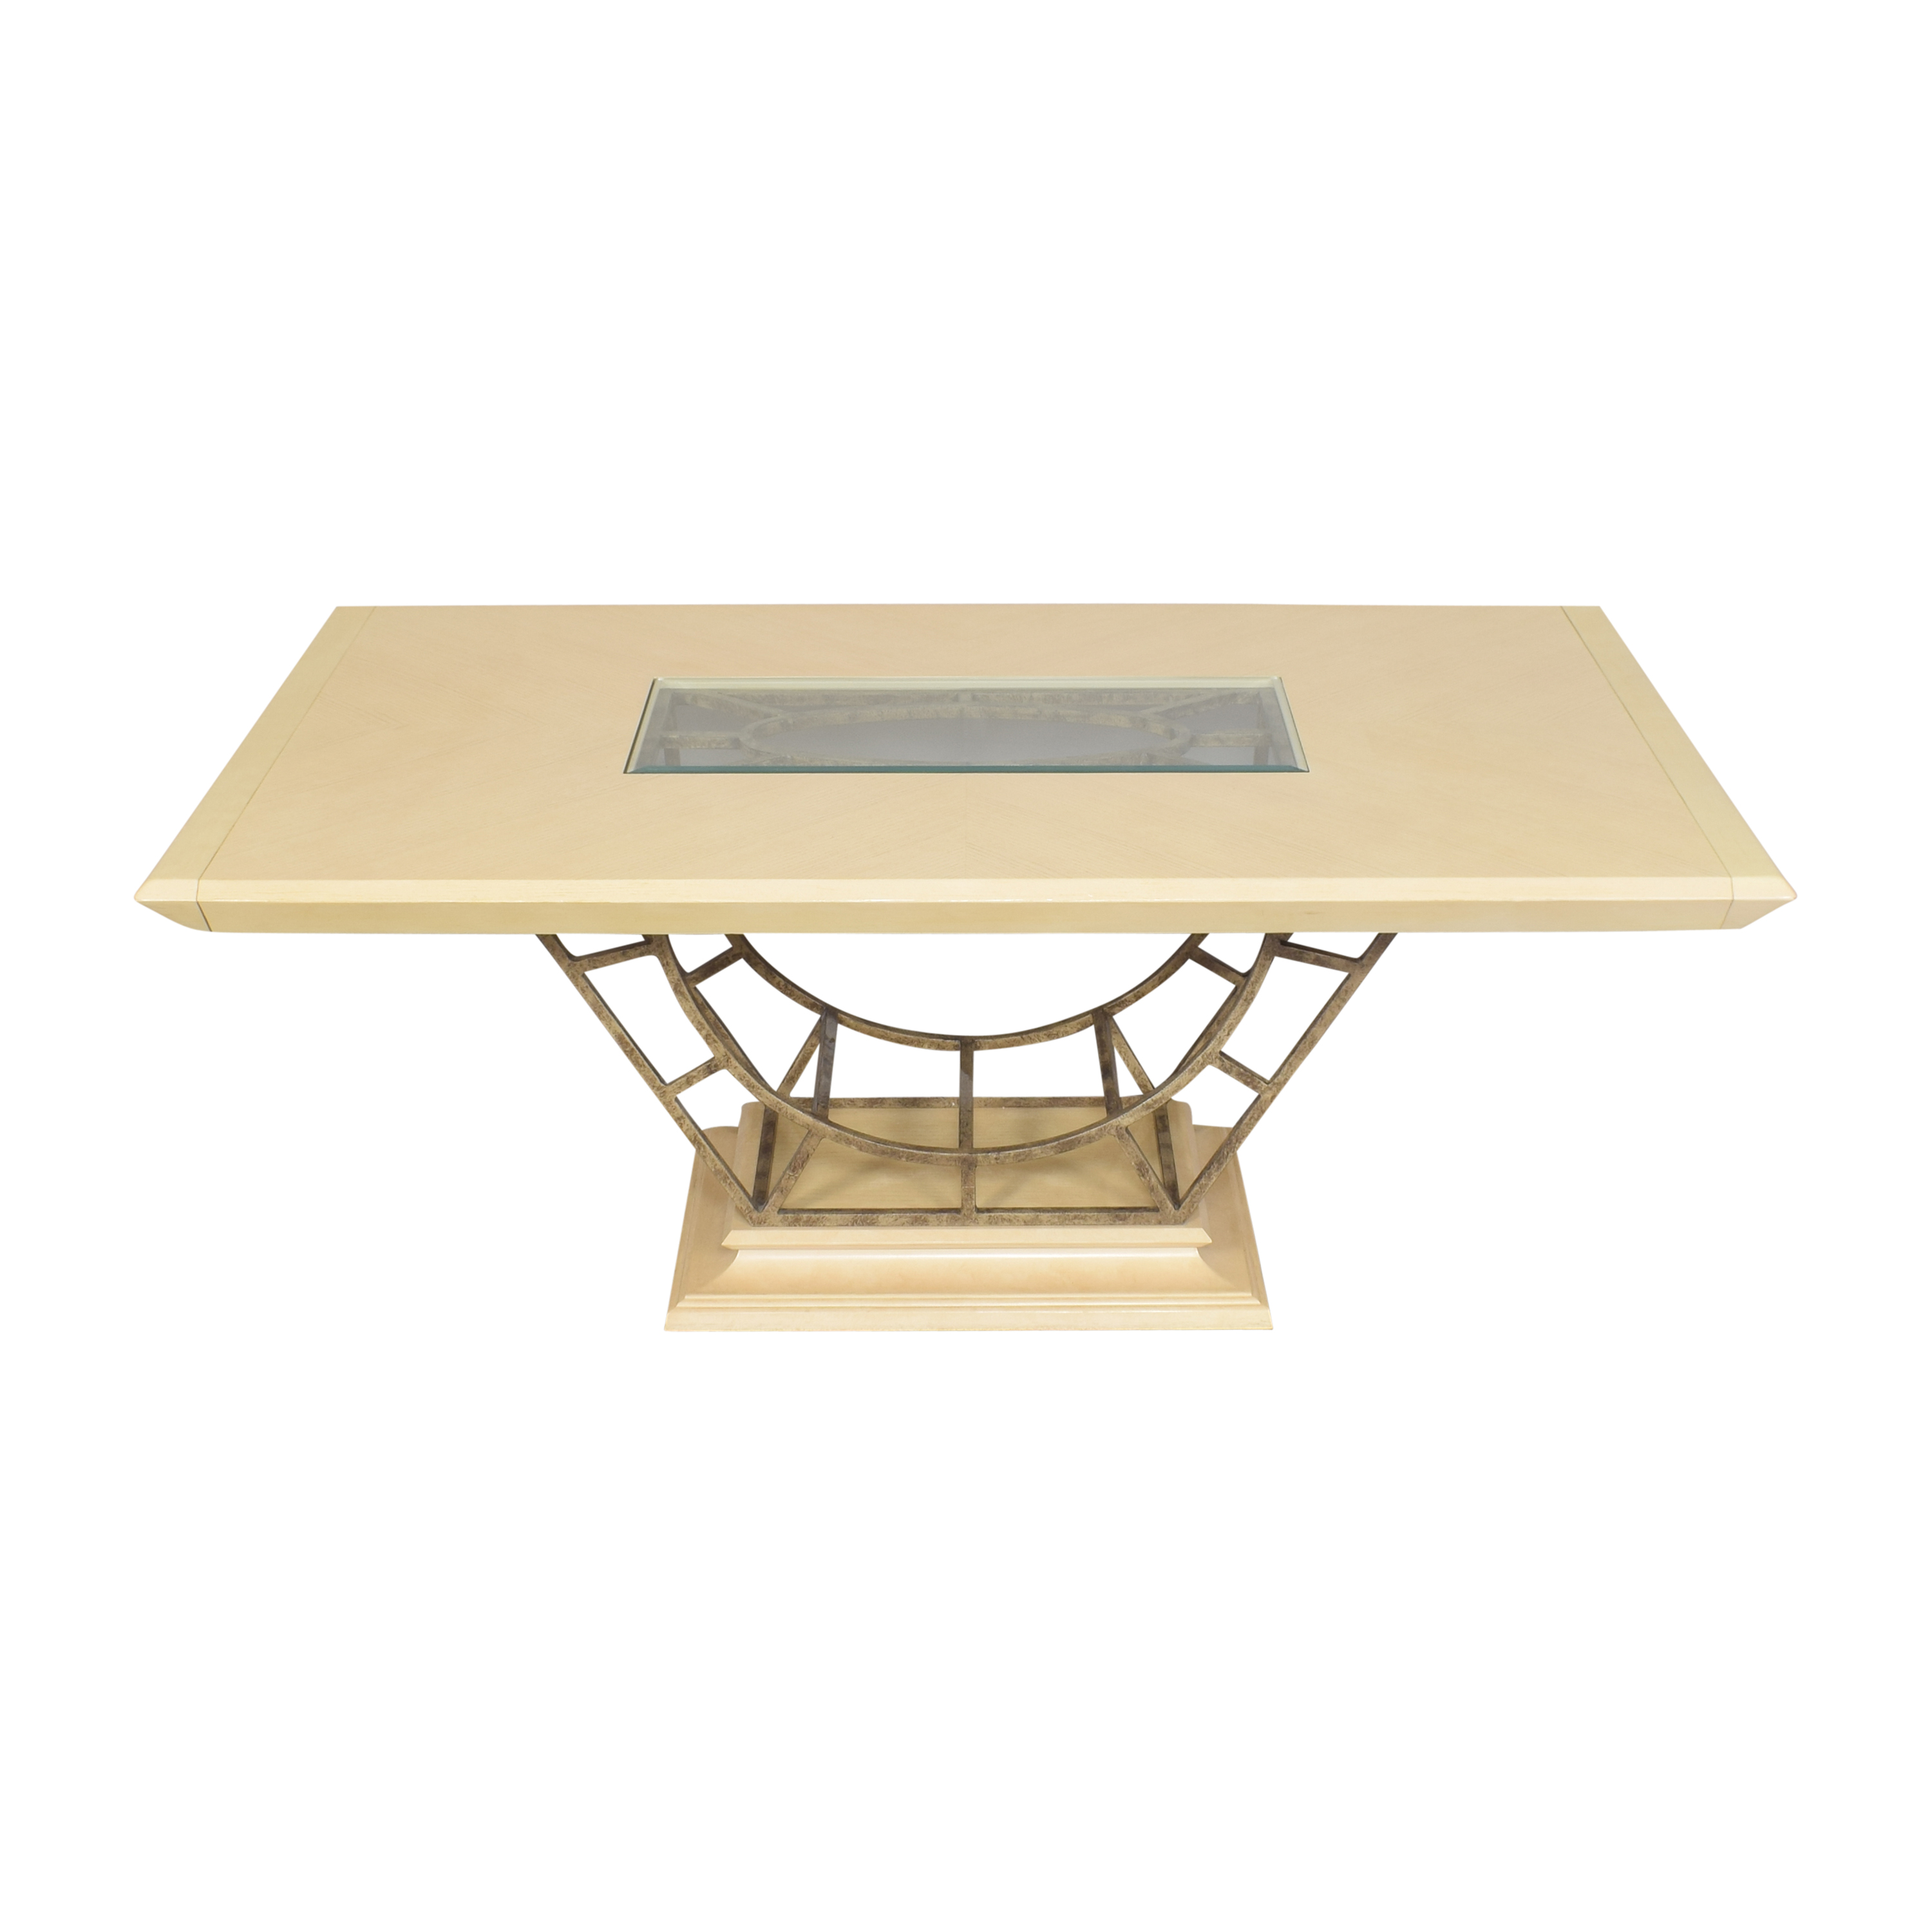 Century Furniture Century Furniture Expandable Dining Table second hand